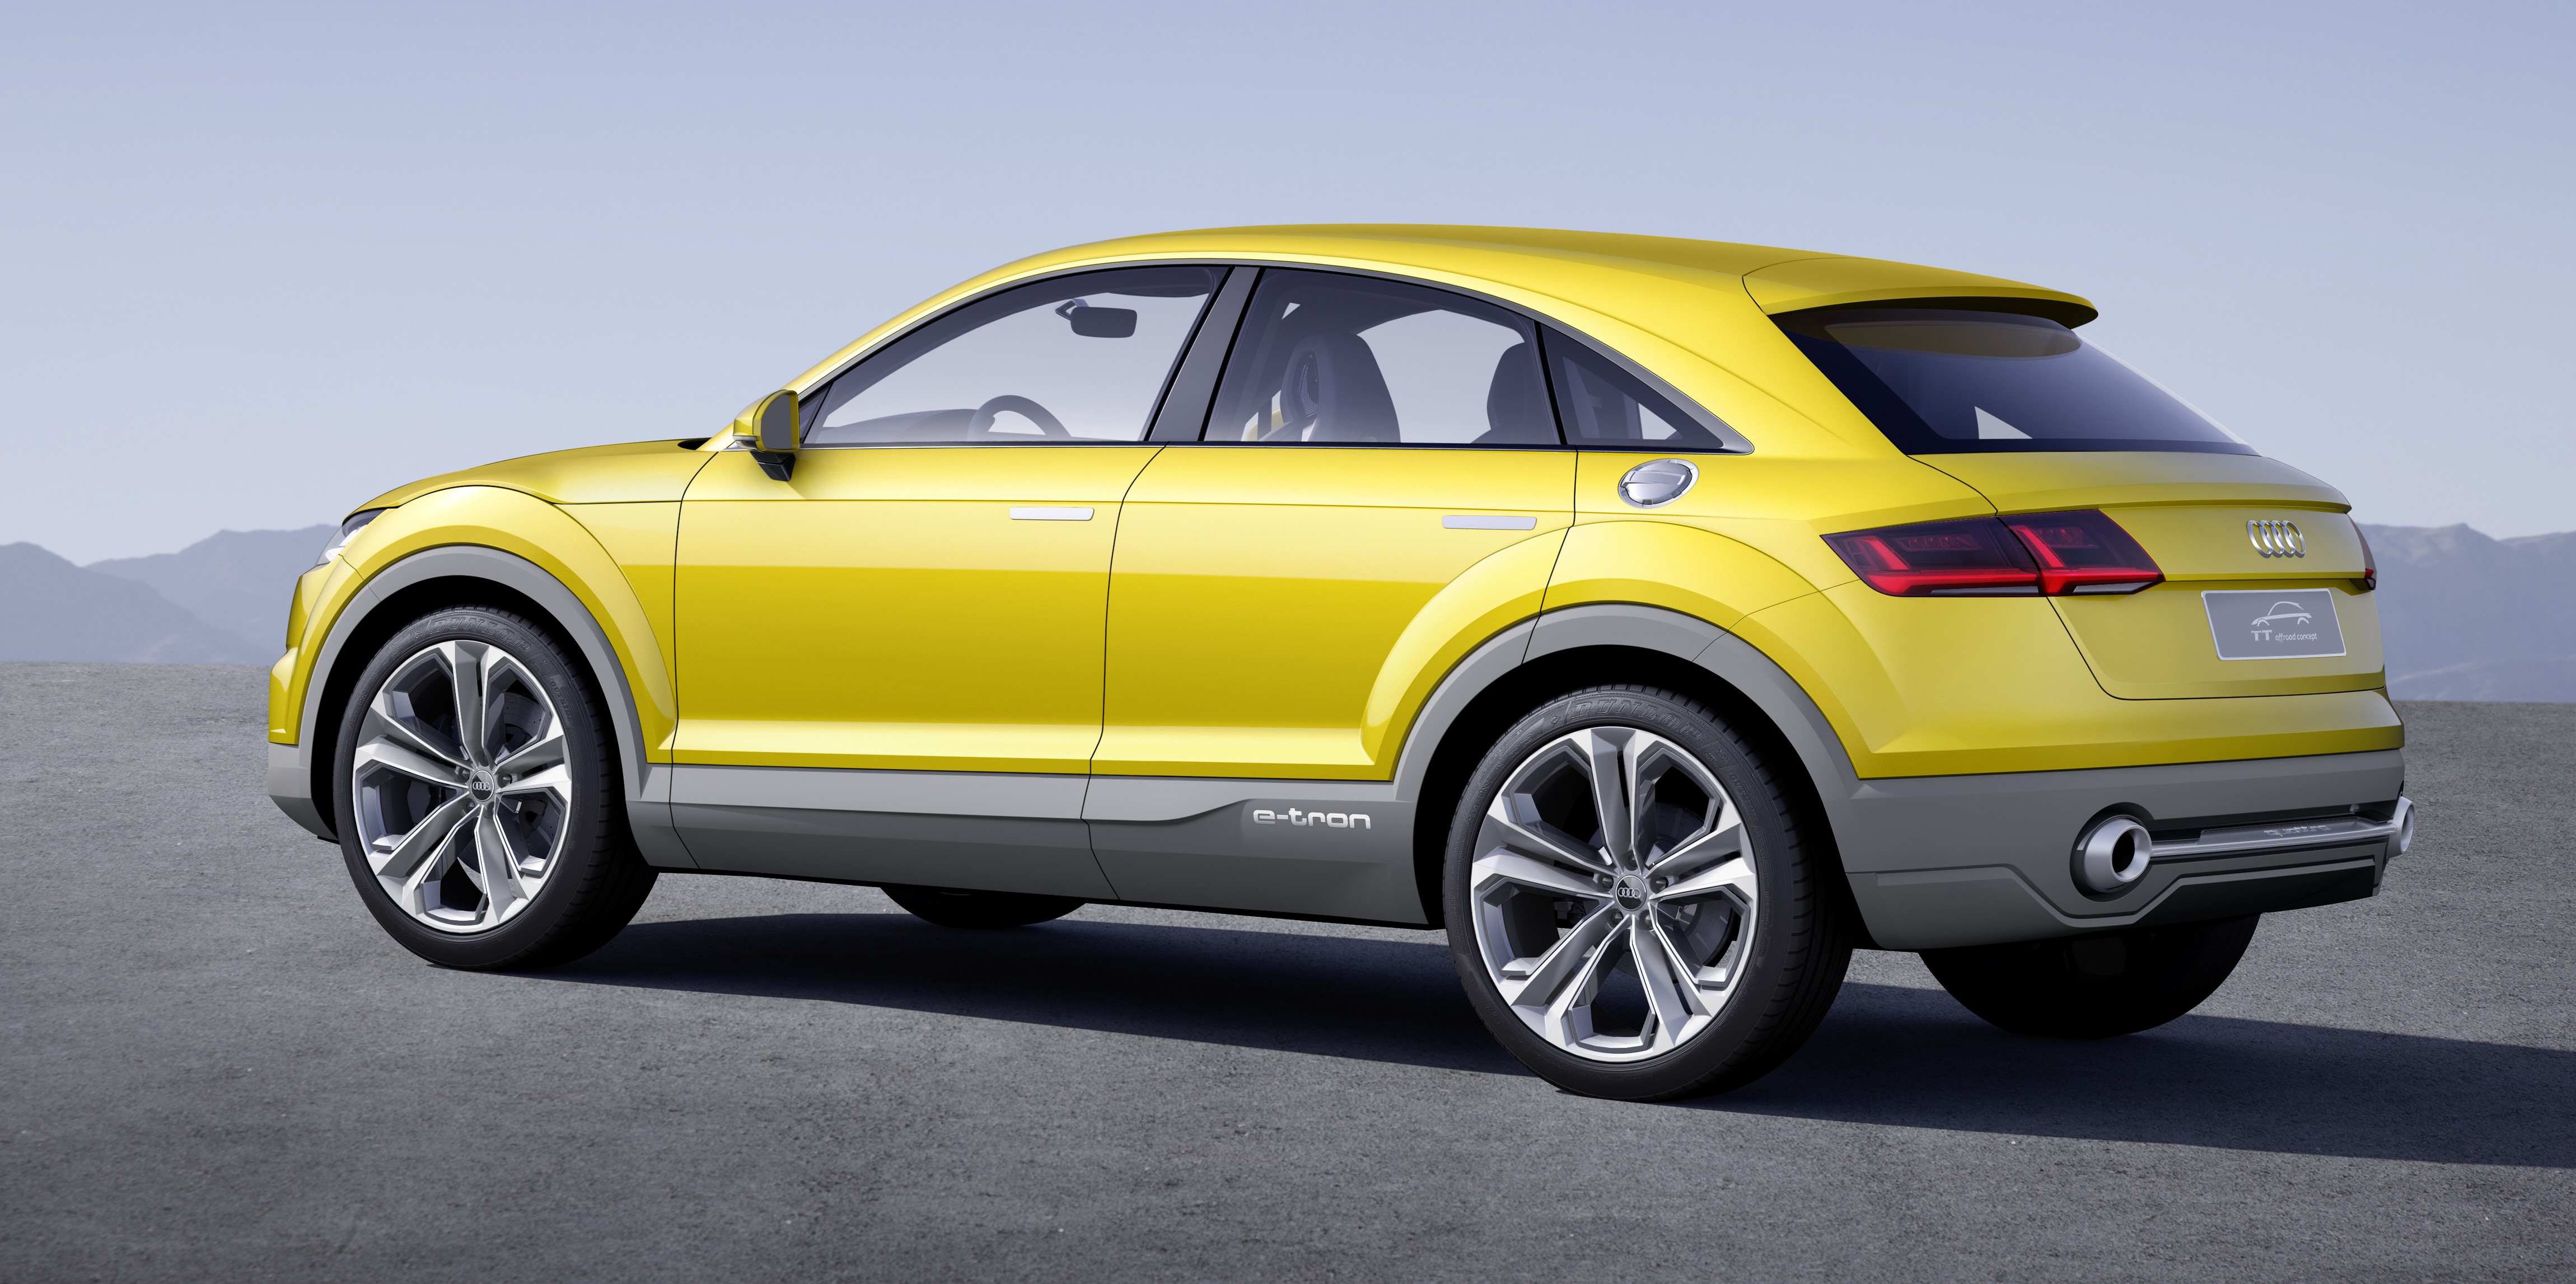 Audi Tt Offroad Concept Previews Future Q4 Tt Suv Paul